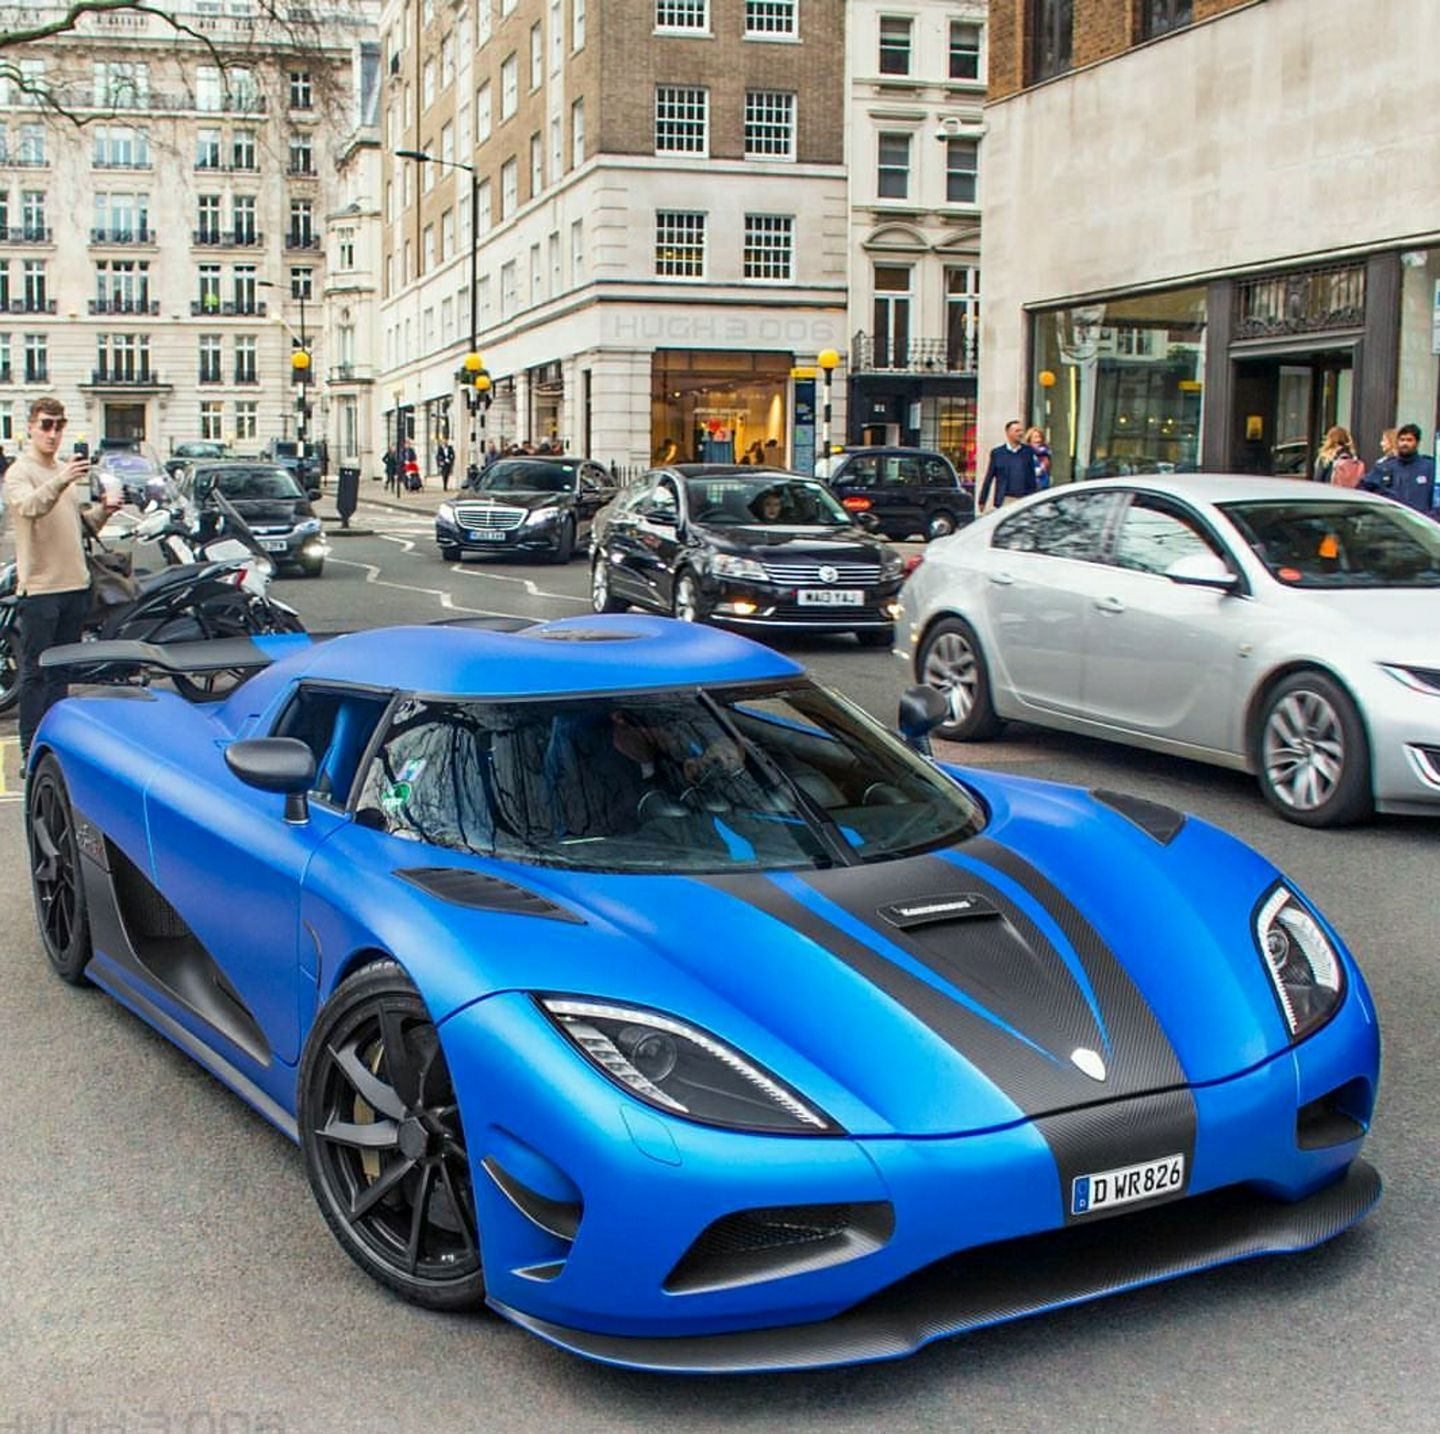 Koenigsegg Agera R (With Images)